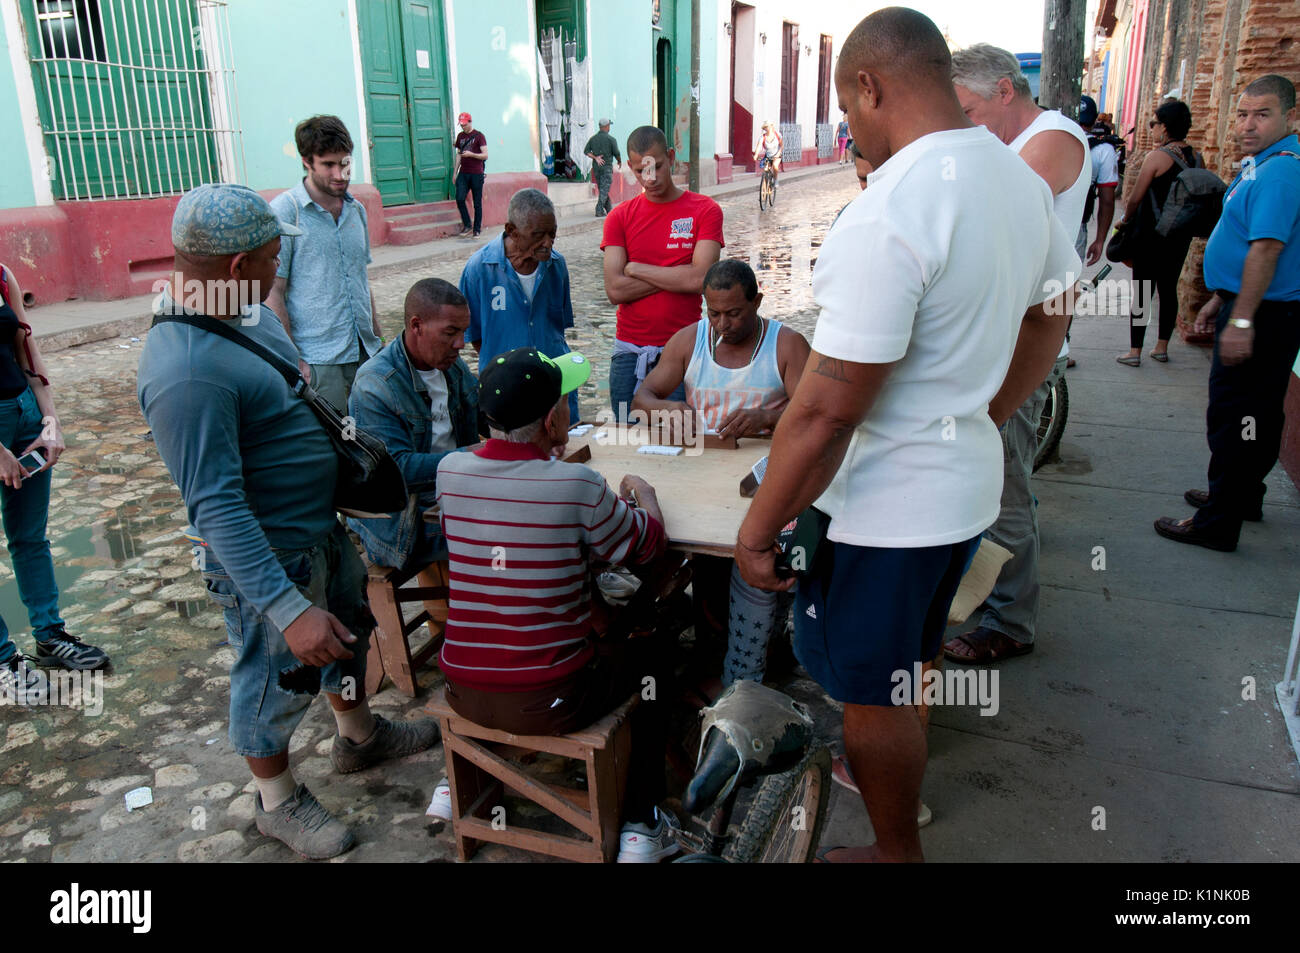 Men playing dominoes on street in Trinidad Cuba - Stock Image